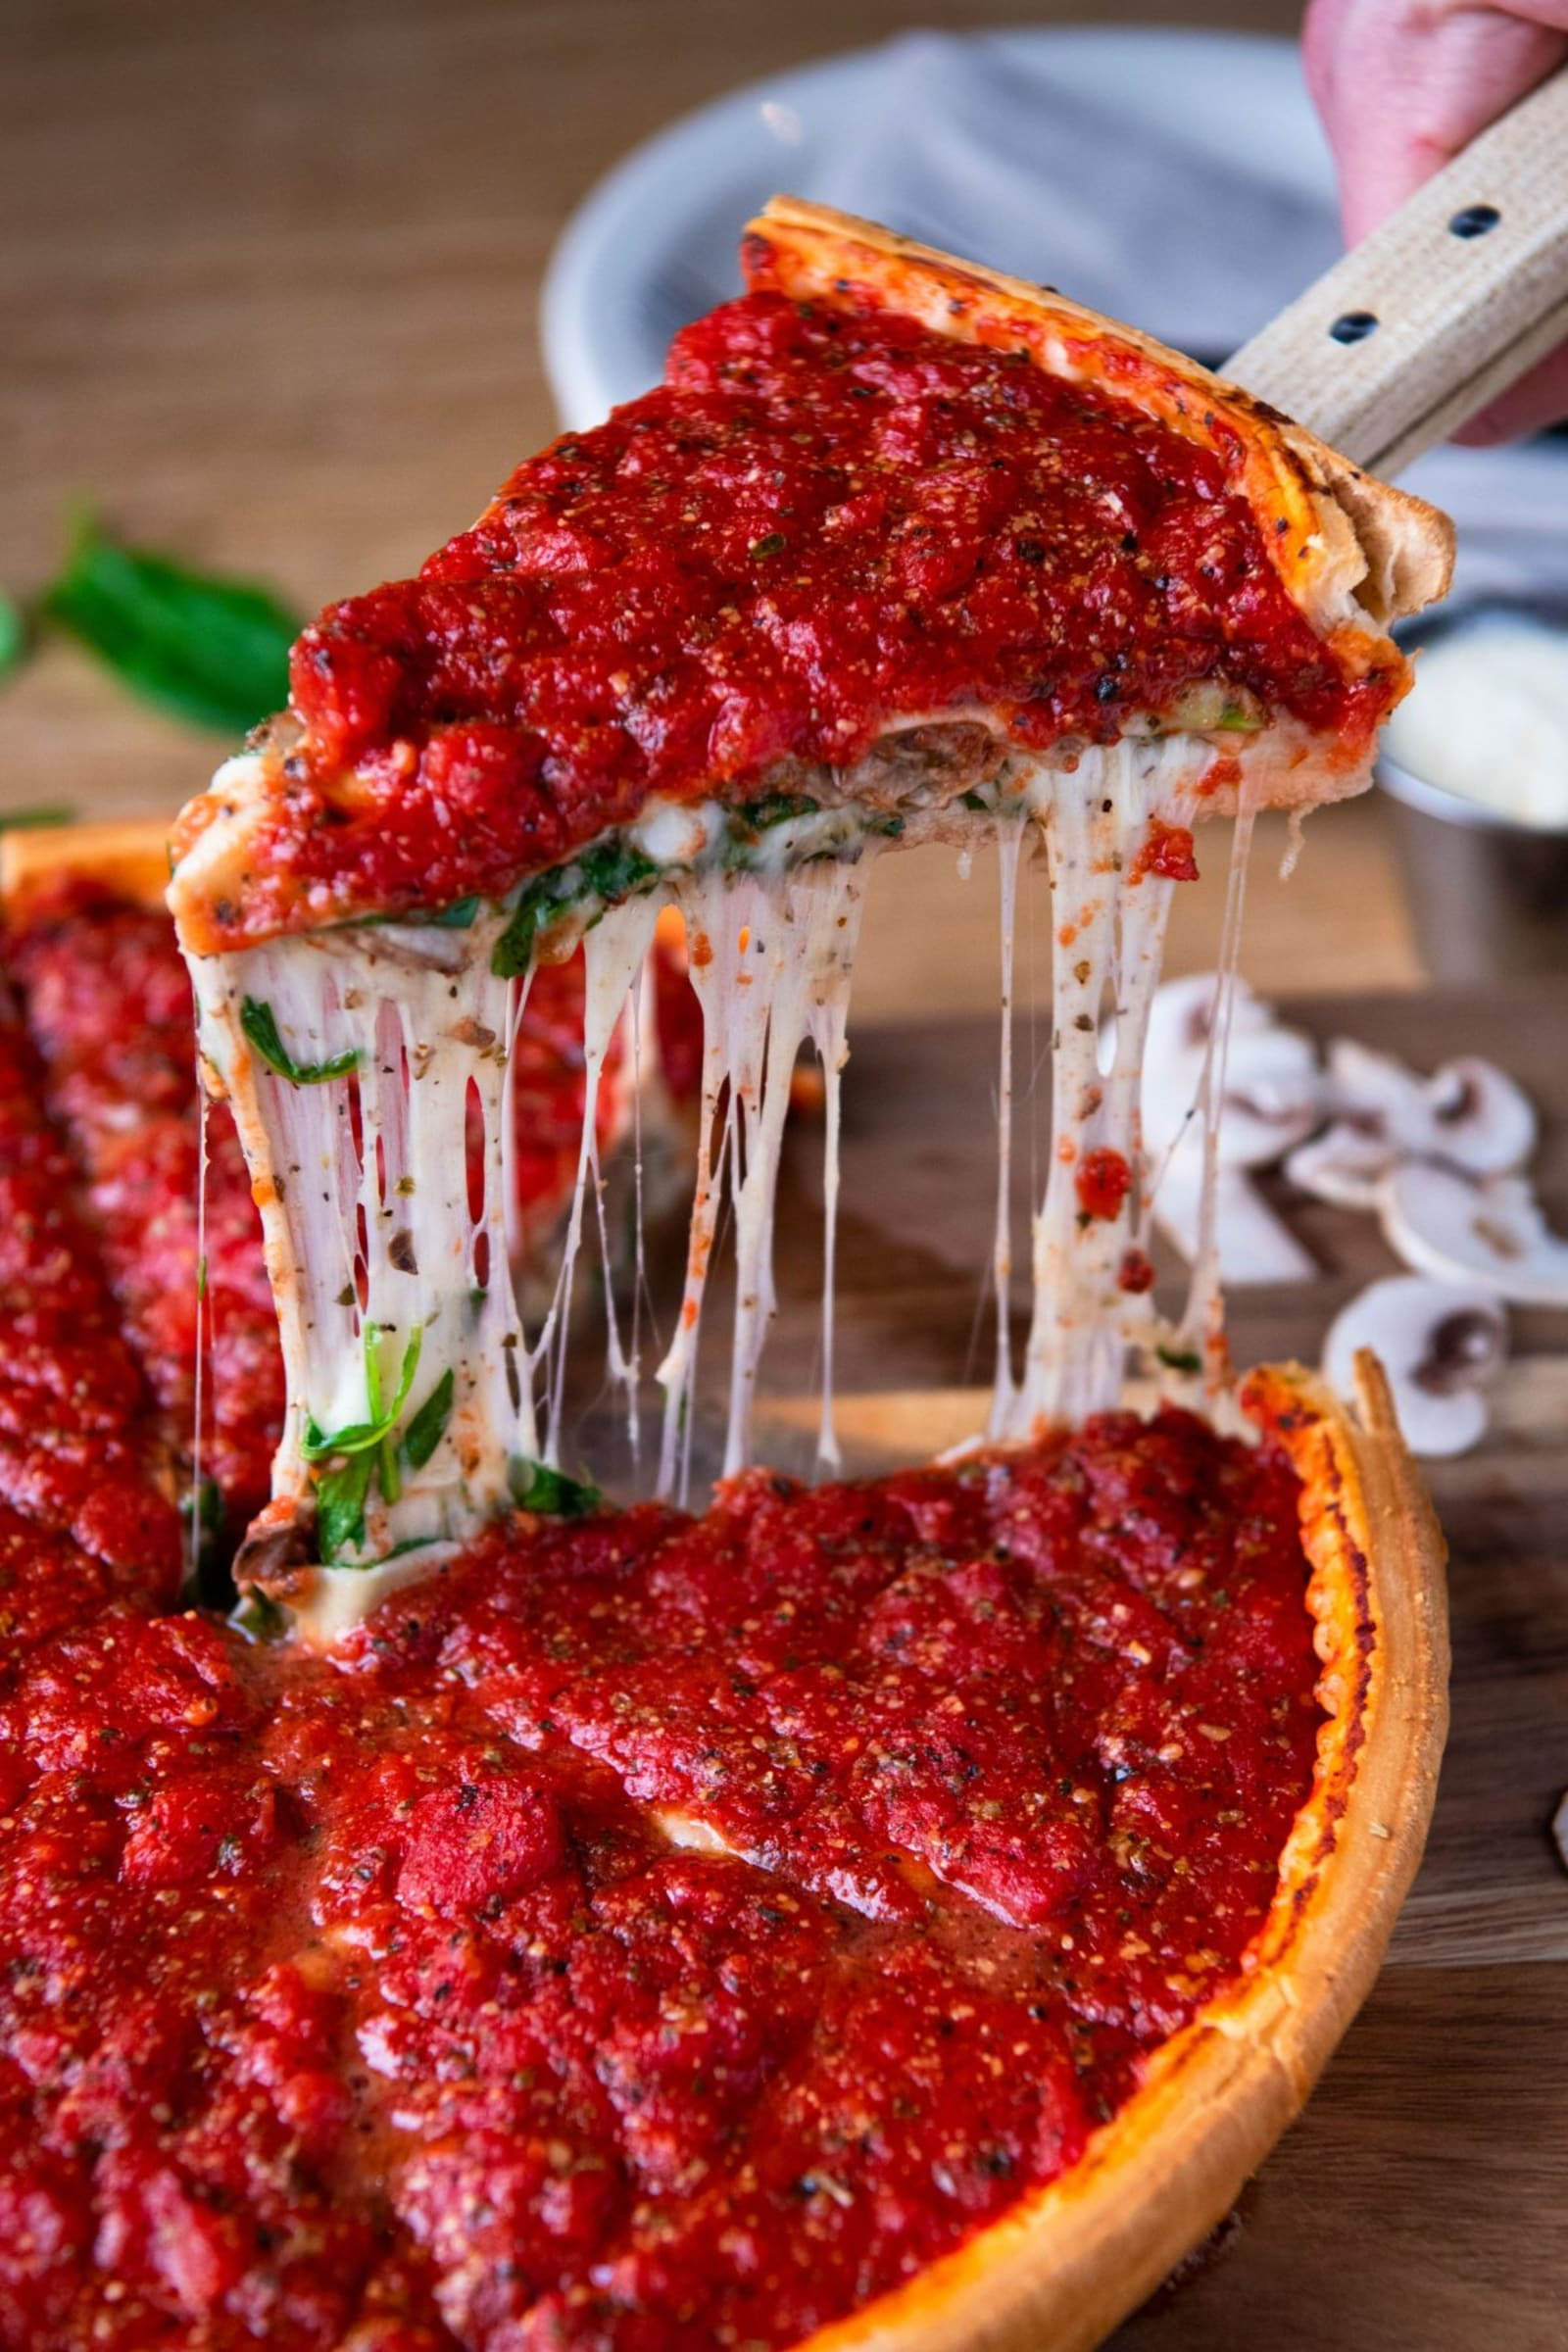 Gifts at Zachary's Chicago Pizza